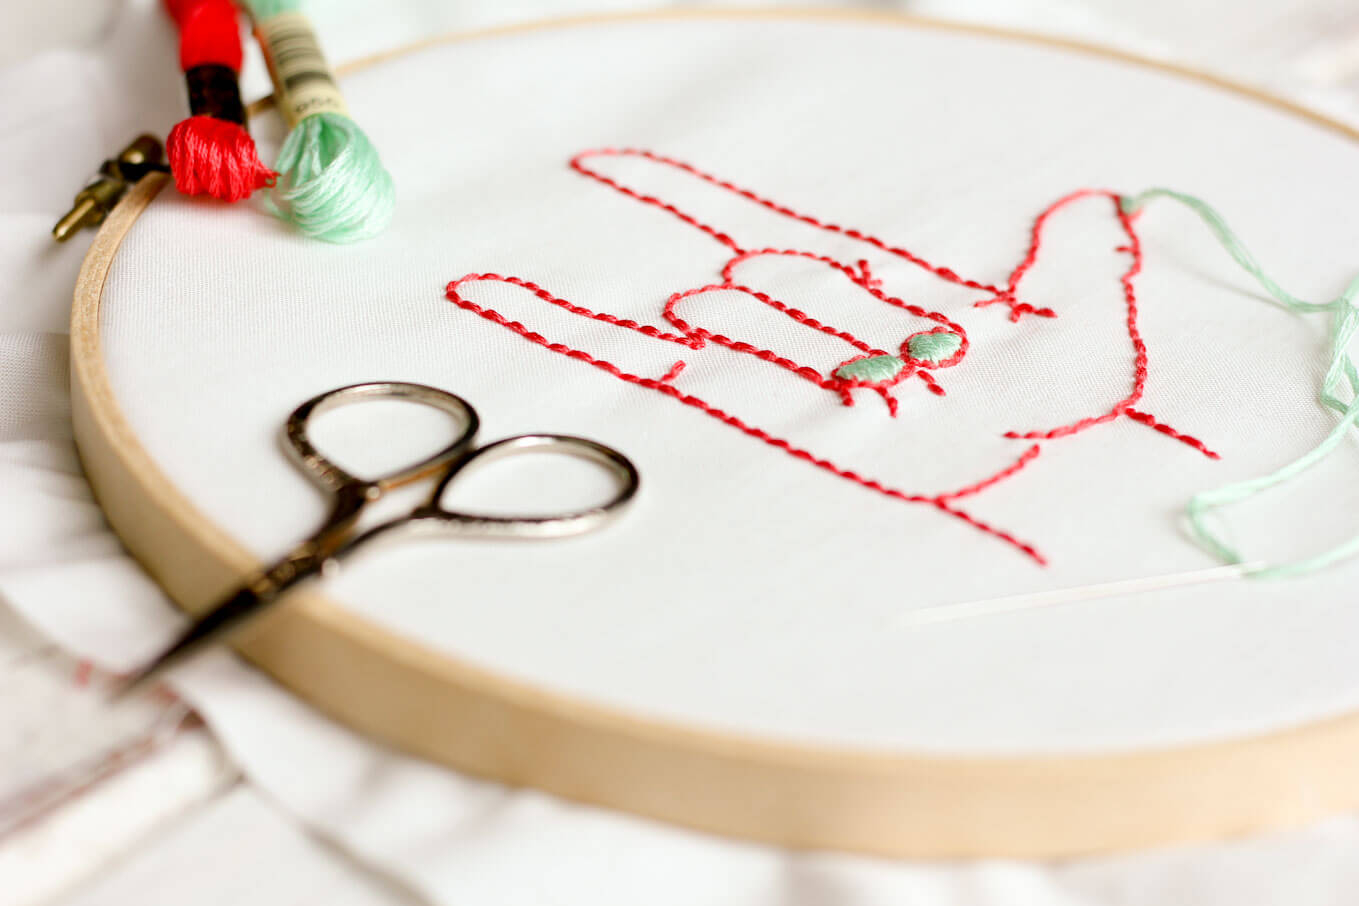 How To Make An Embroidery Pattern I Love You Free Embroidery Pattern Make Do Crew